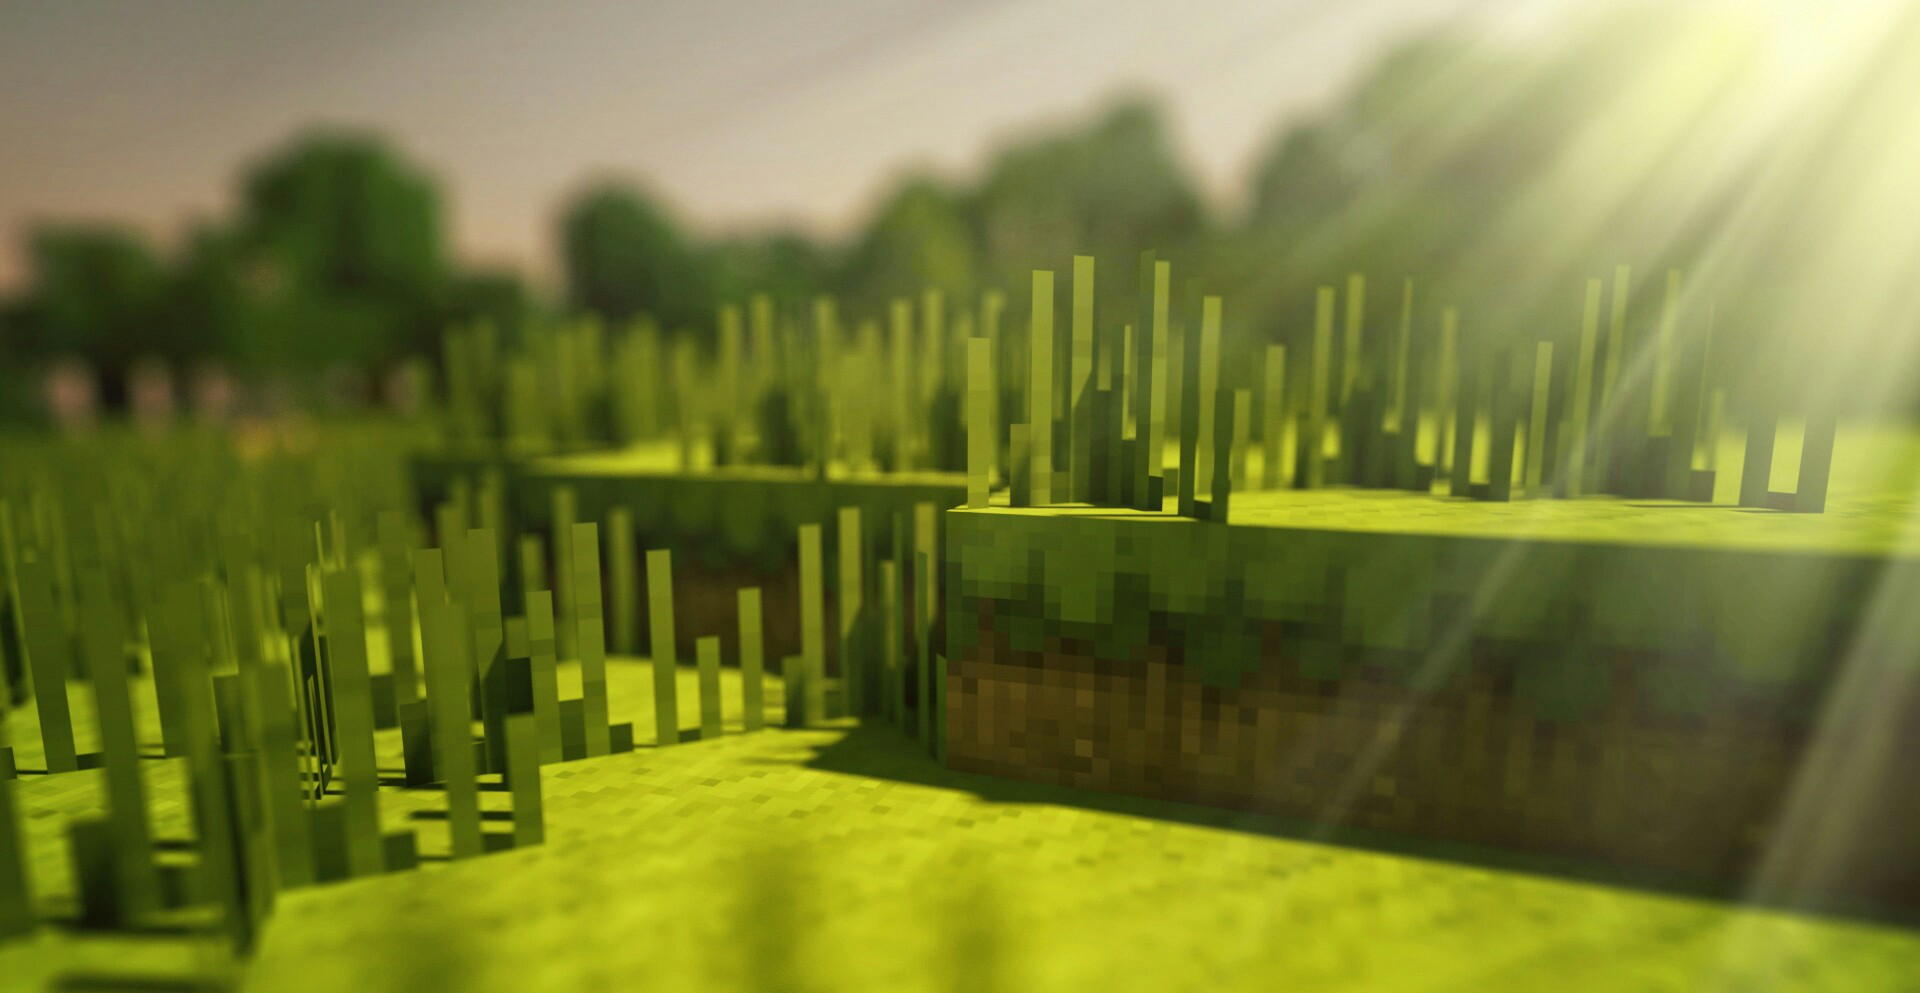 abdeaadaceafde-minecraft-minecraft-pictures-wallpaper-wp3801094